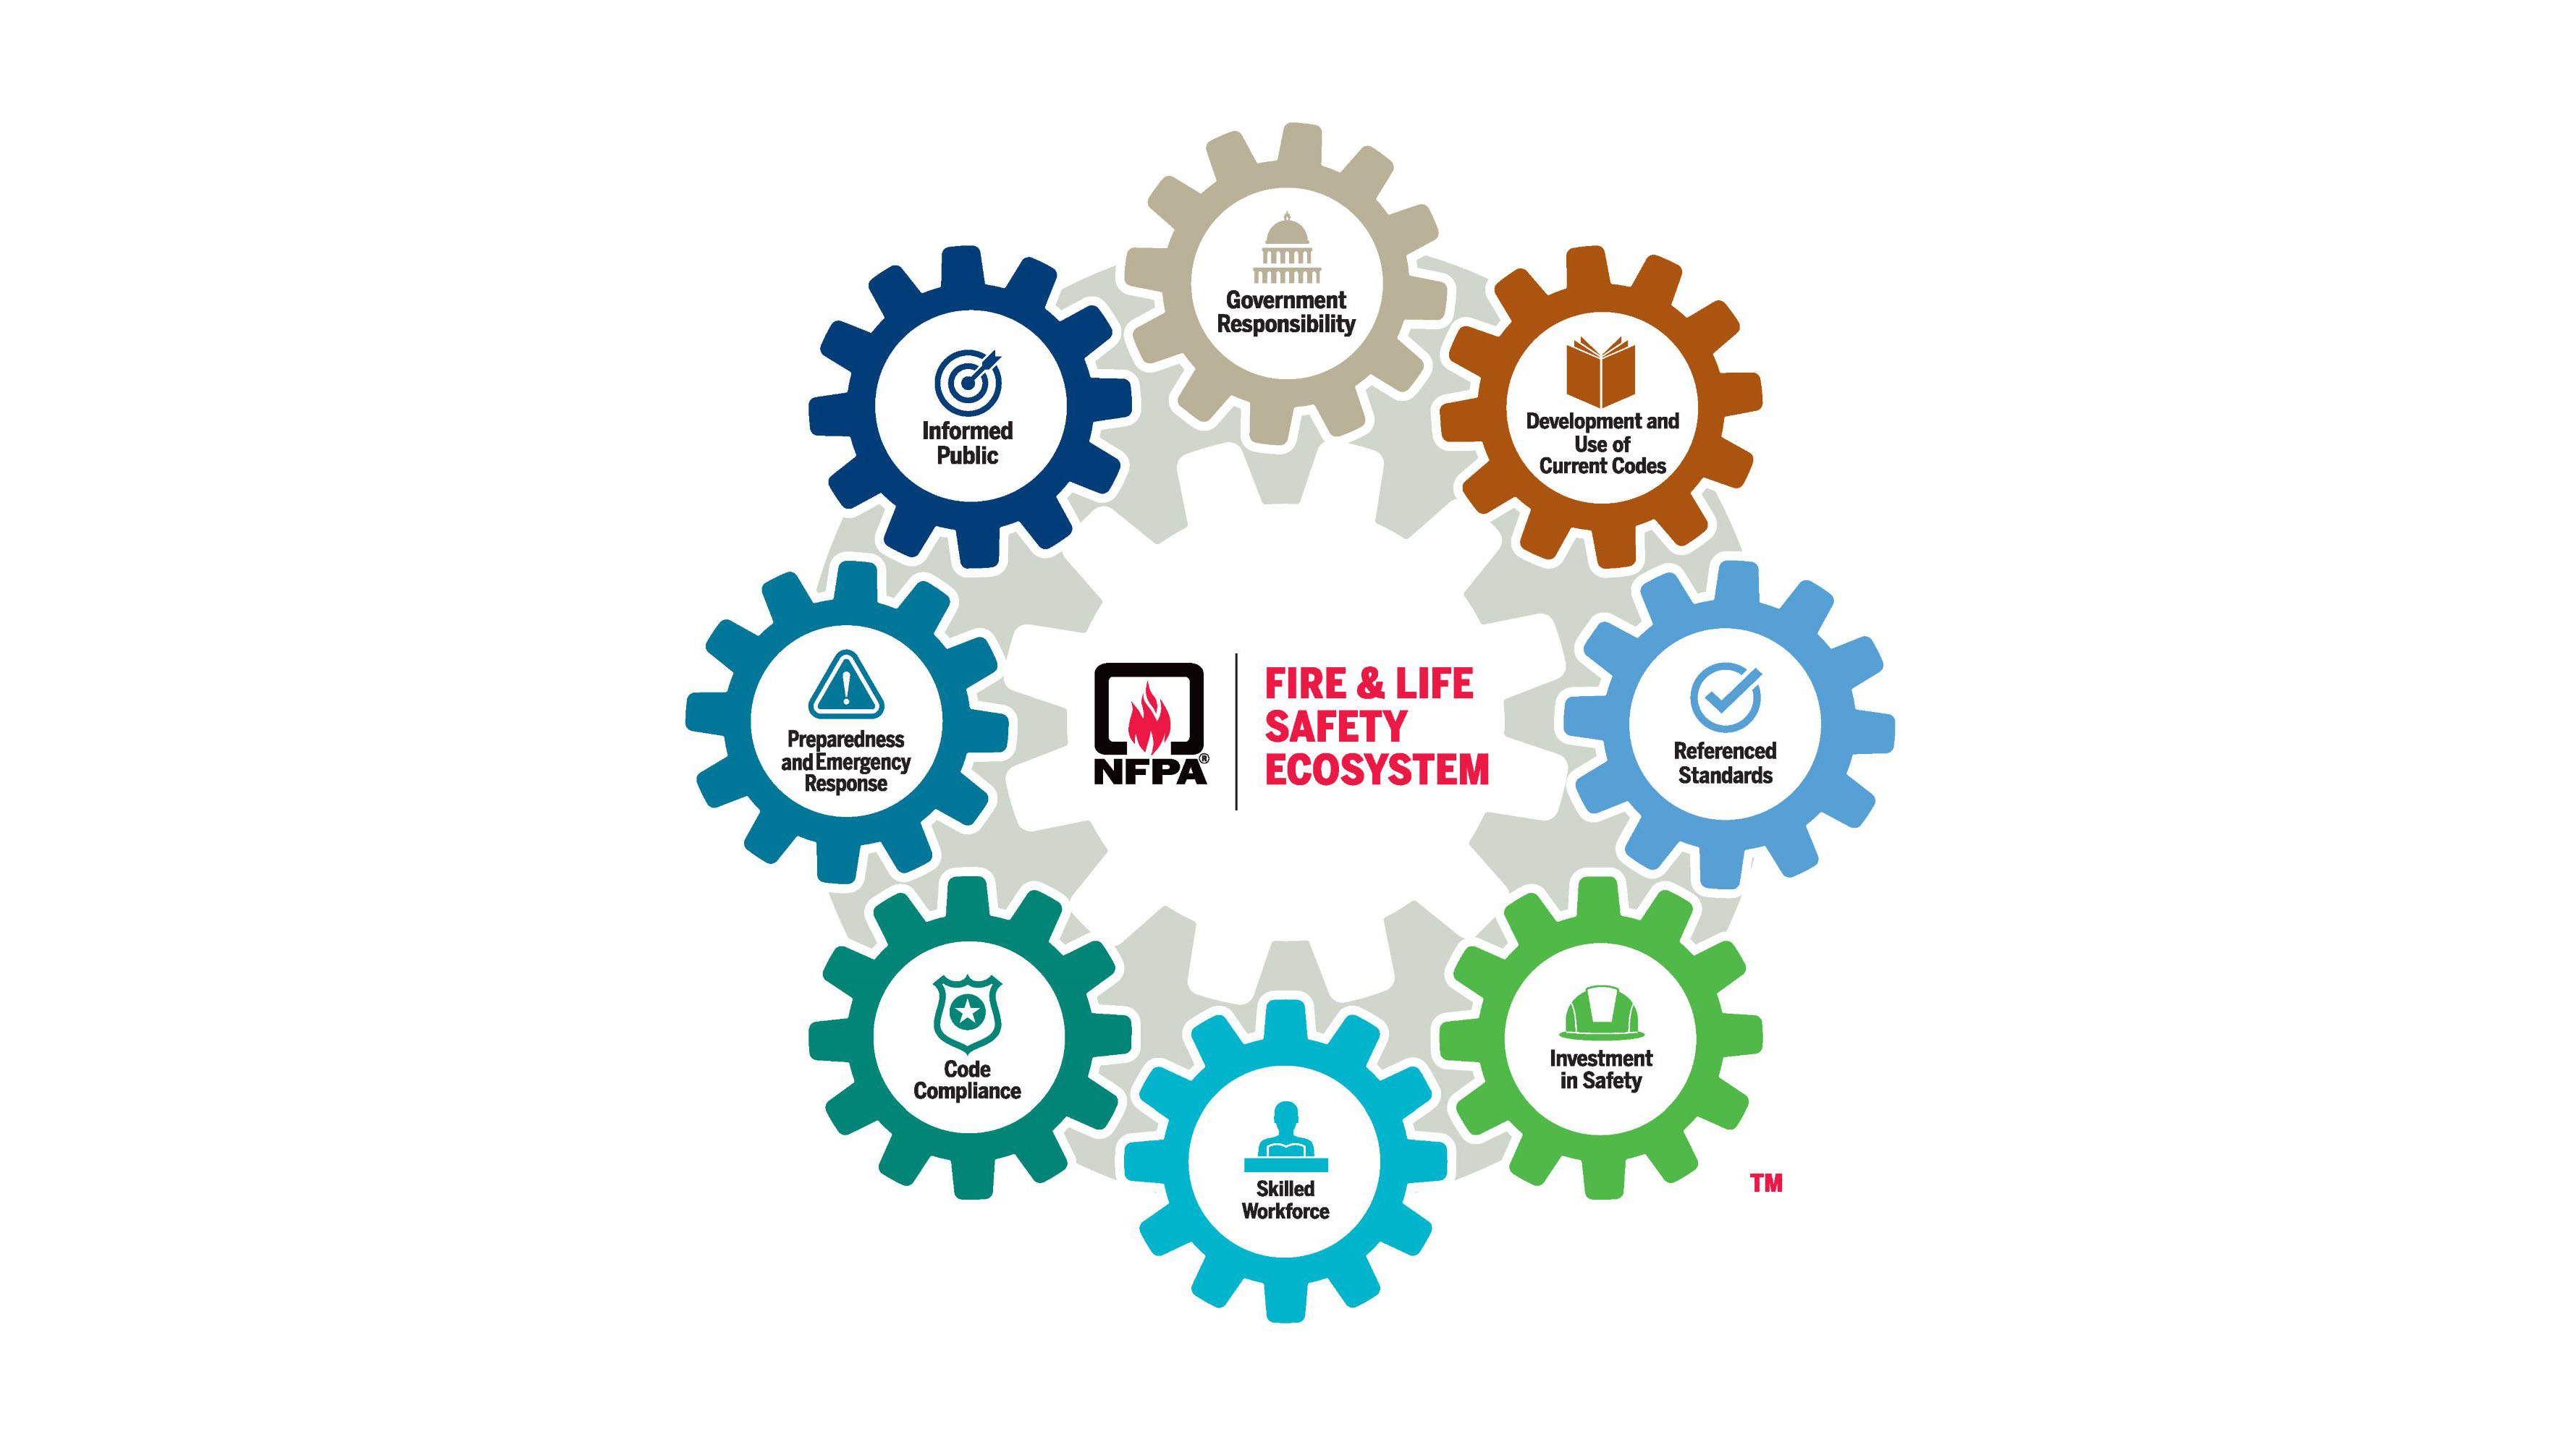 NFPA Fire & Life Safety Ecosystem